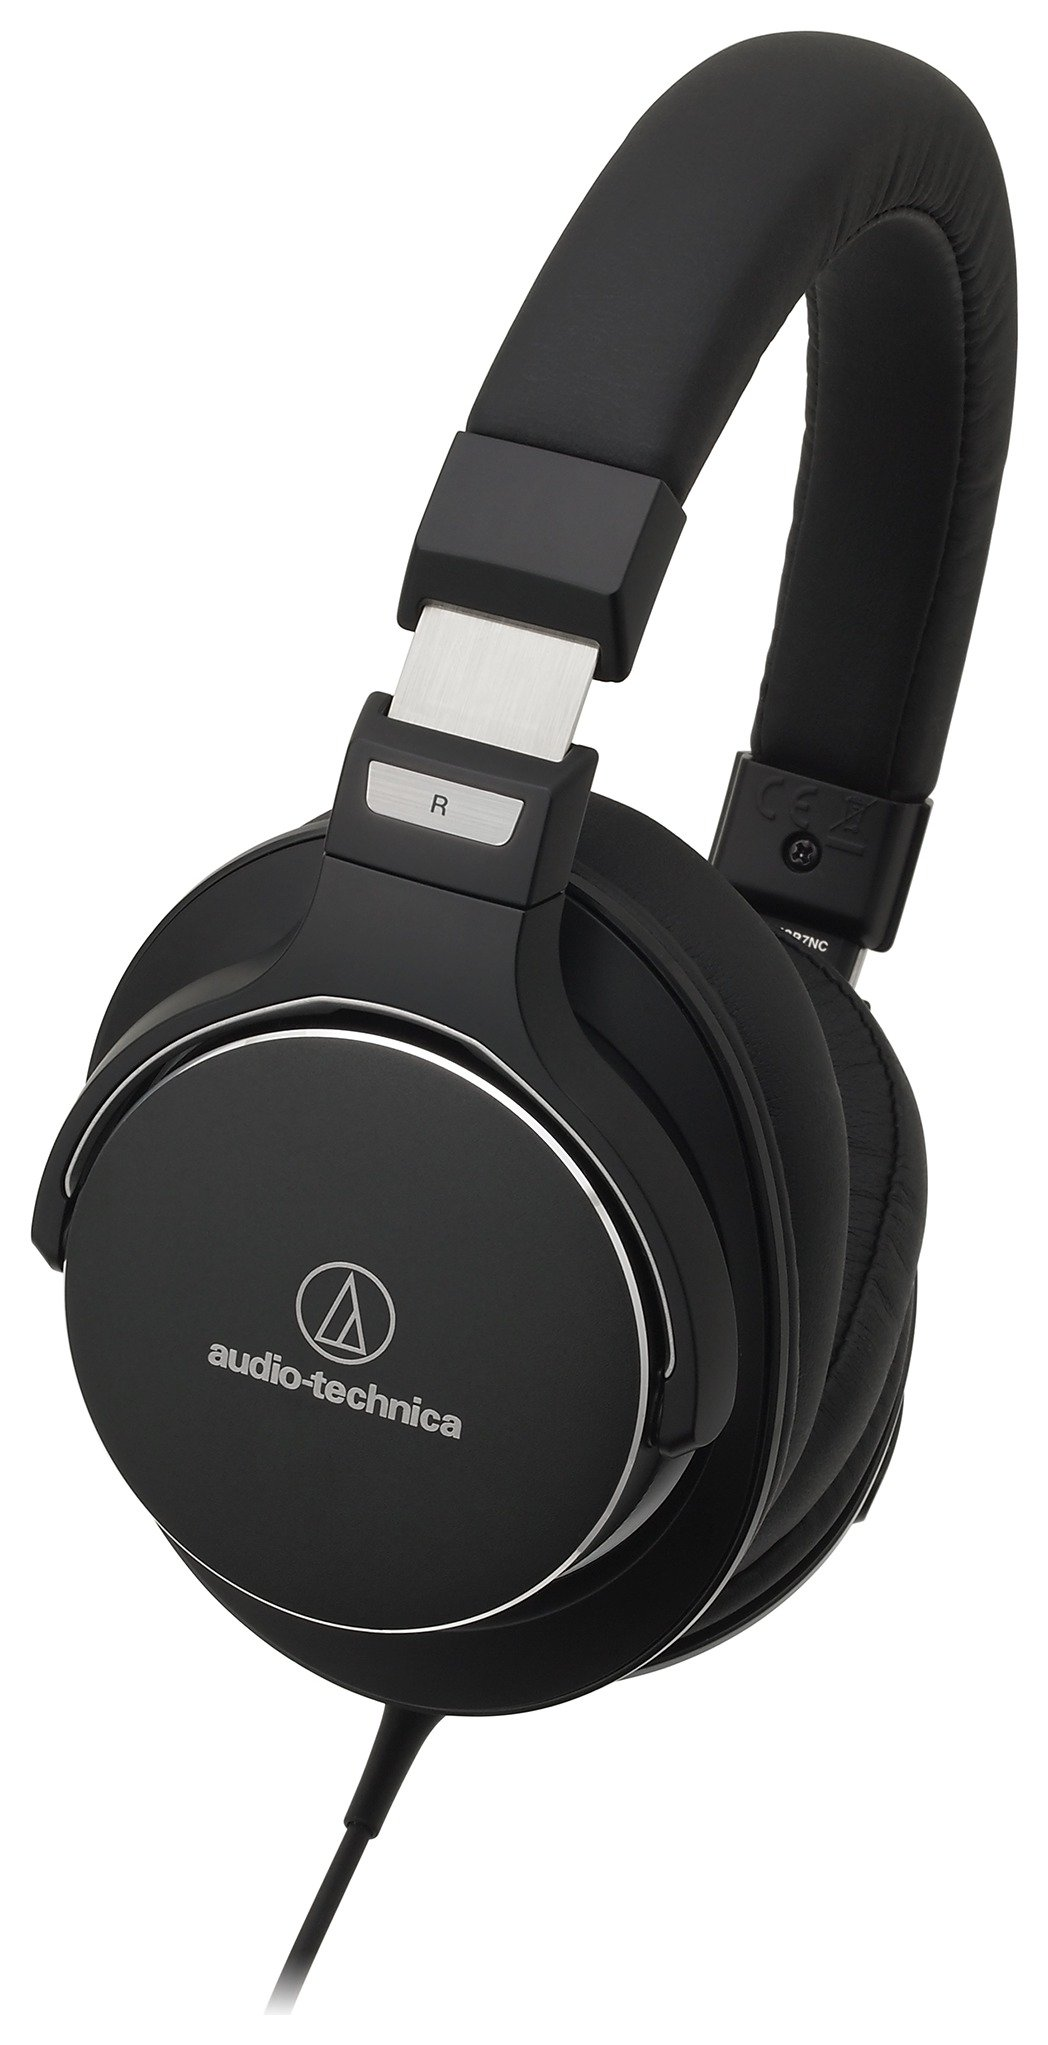 Image of Audio Technica ANC On-Ear Headphones - Black.